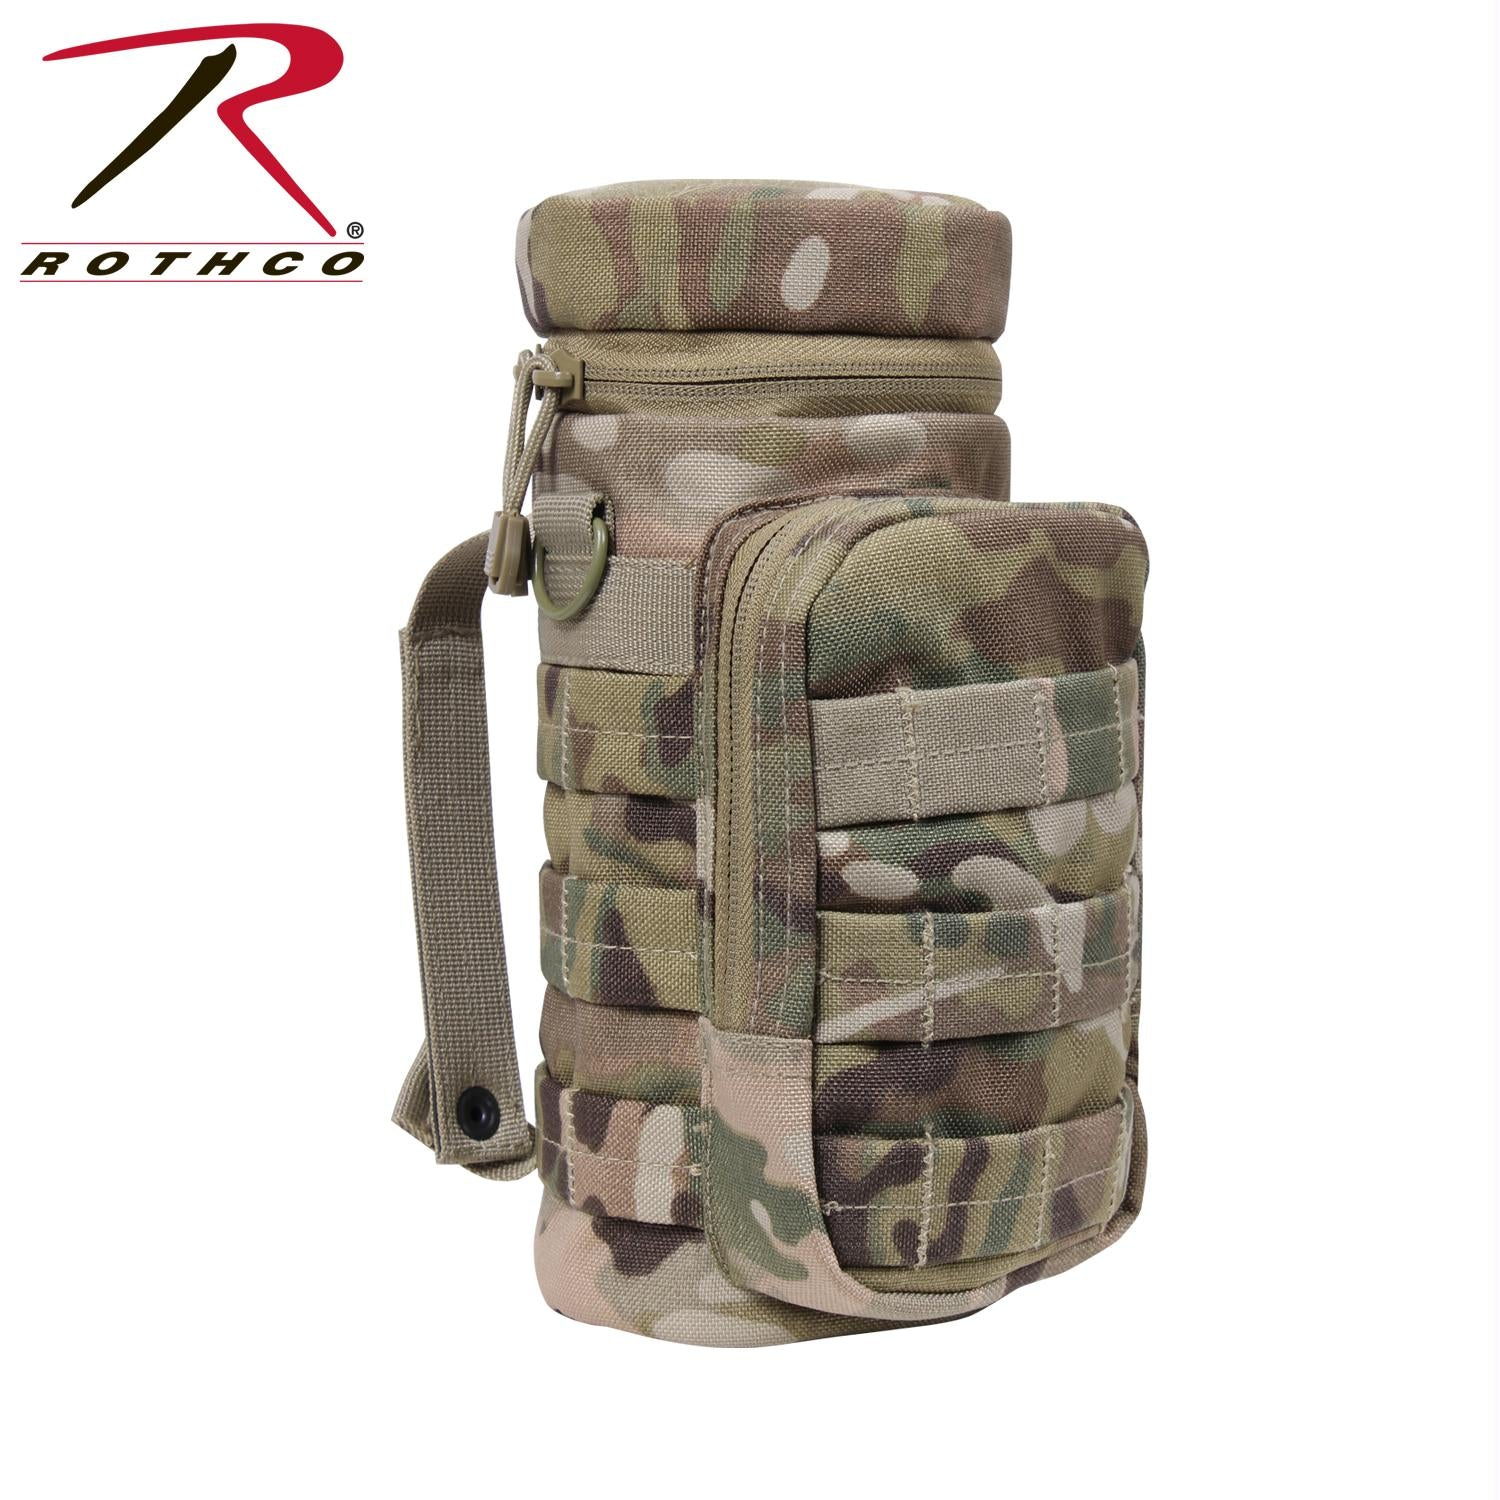 Rothco MOLLE Compatible Water Bottle Pouch - MultiCam